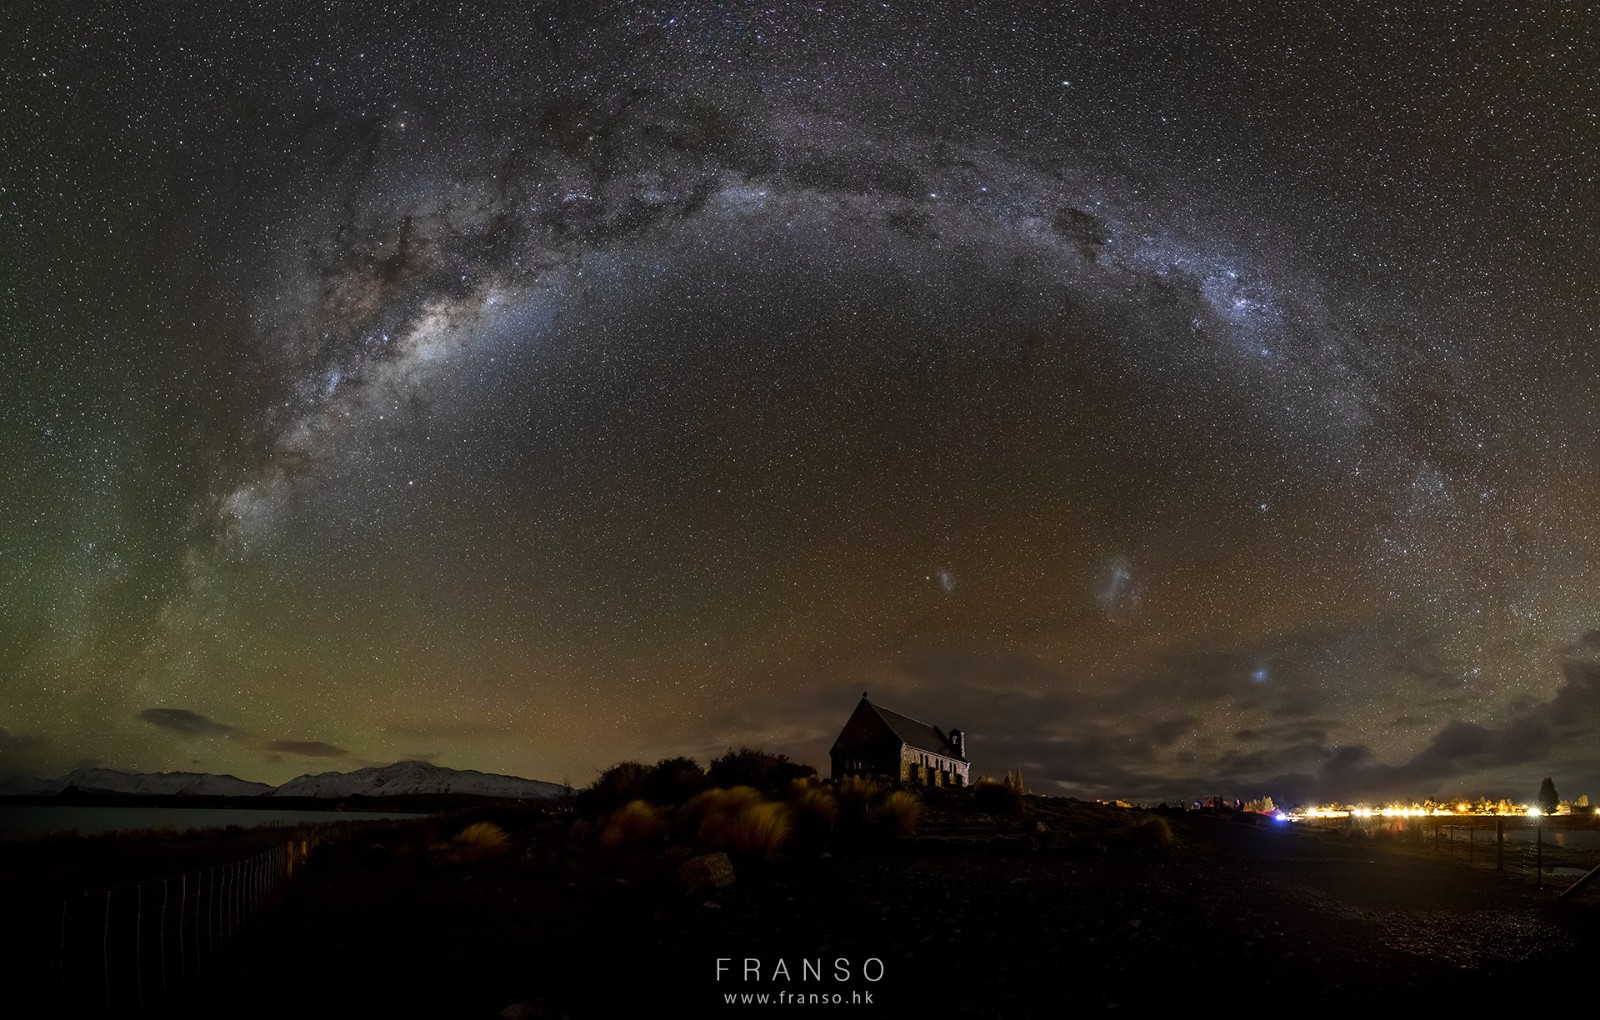 Starscape and Milkyway | Overseas | The Arch of the Milkyway | The Church of good shepherd